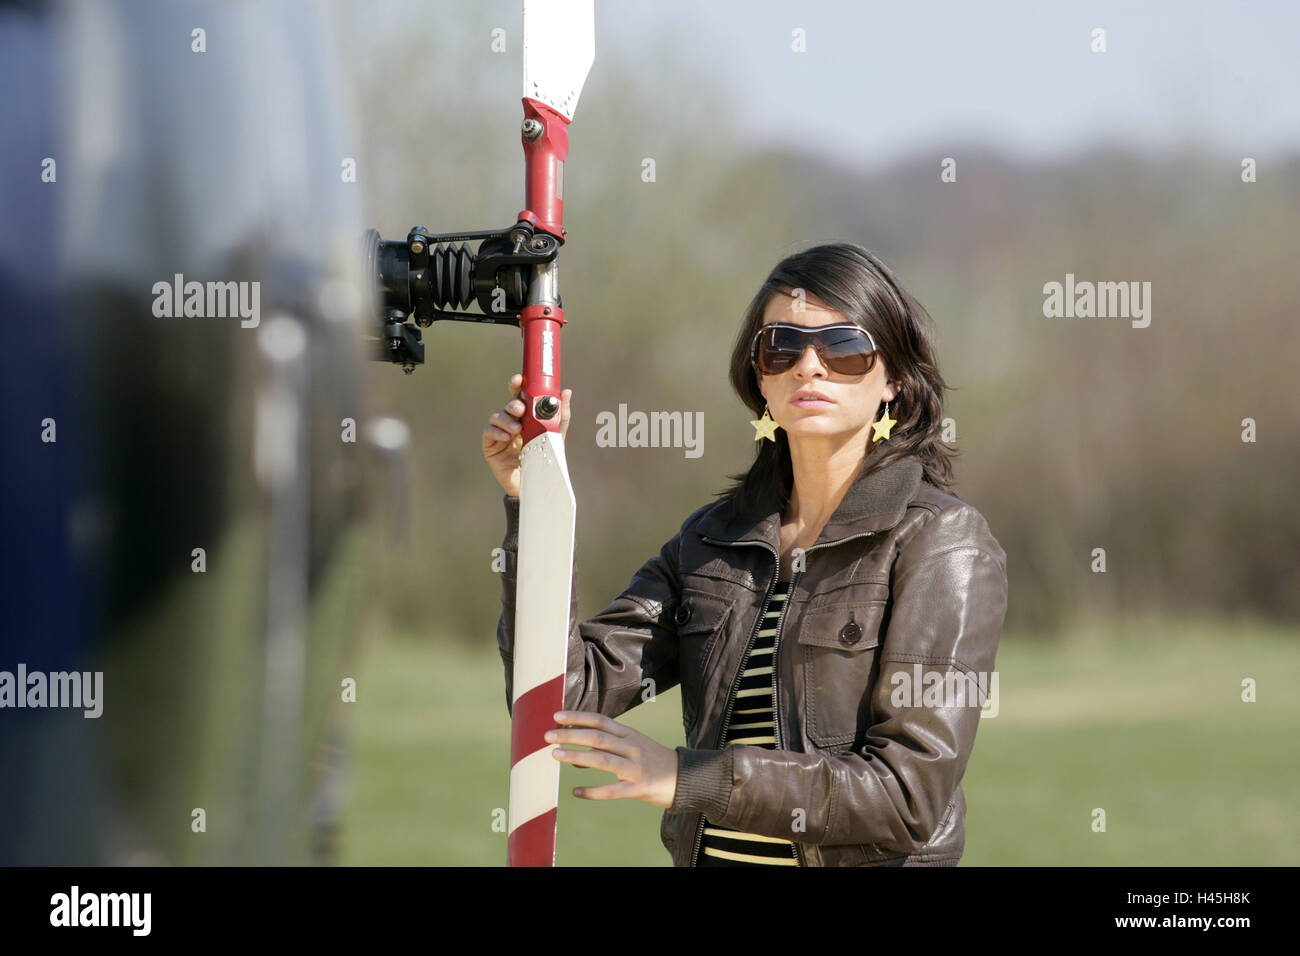 Woman, young, helicopters, rotor, stand, - Stock Image